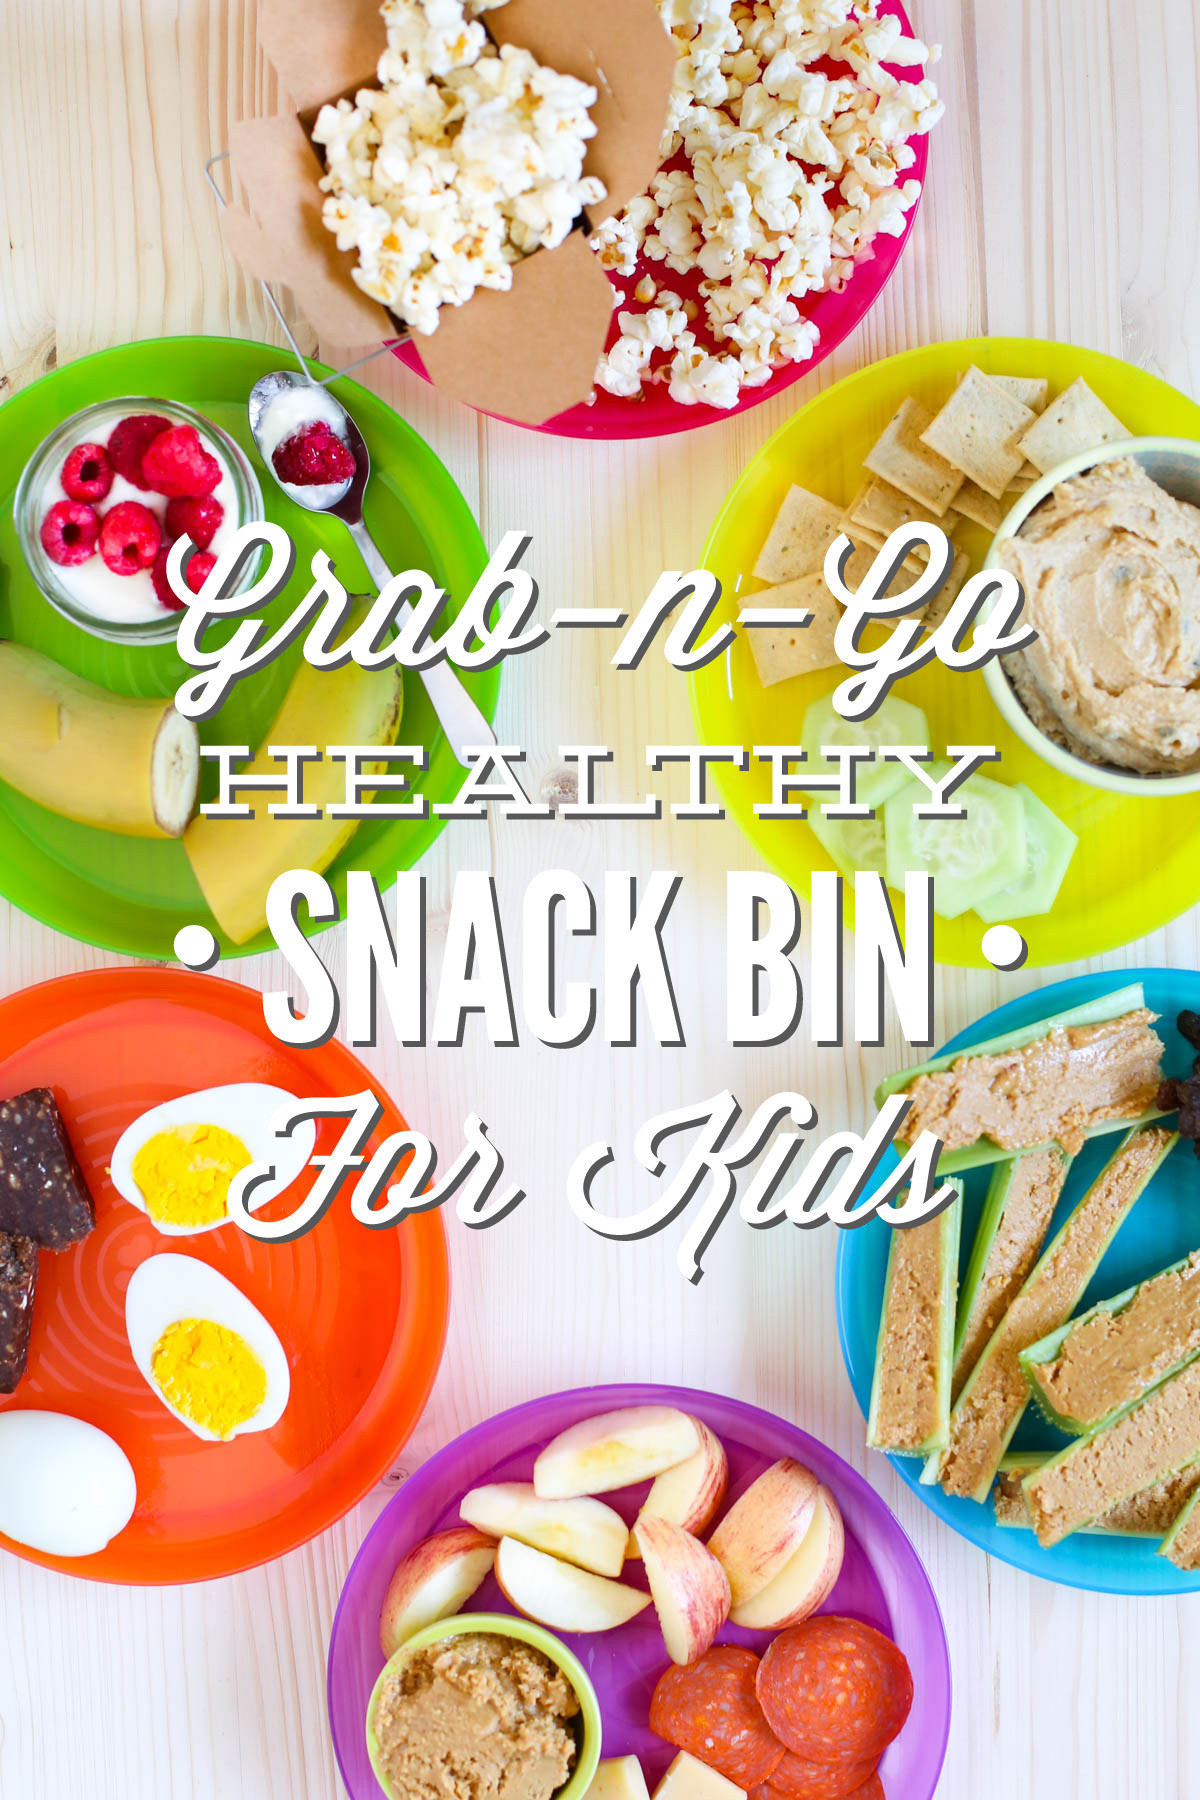 Healthy Snacks For Kids On The Go  Simplify Snack Time Grab n Go Healthy Snack Bin for Kids